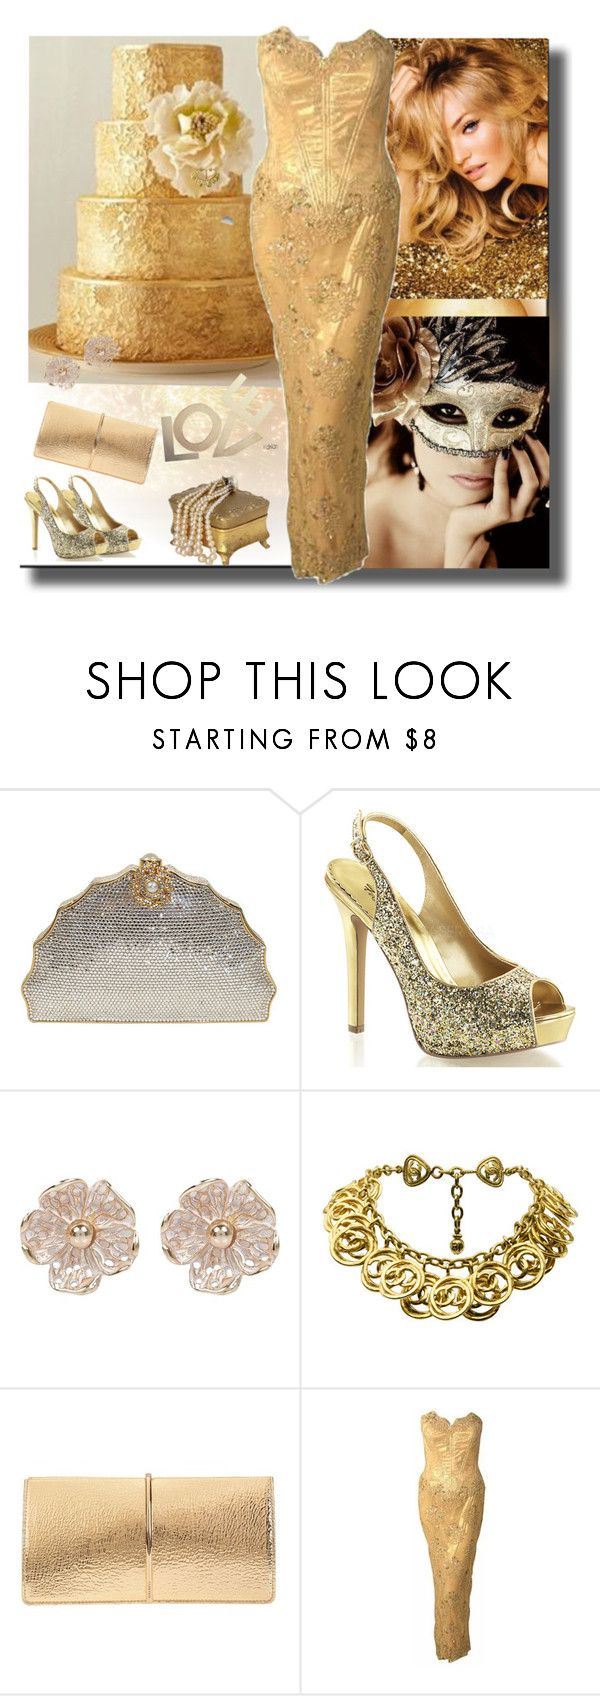 """""""Birthday Series Finale Cake"""" by sheri-gifford-pauline ❤ liked on Polyvore featuring Judith Leiber, River Island, Chanel, Nina Ricci, Vicky Tiel and cake"""